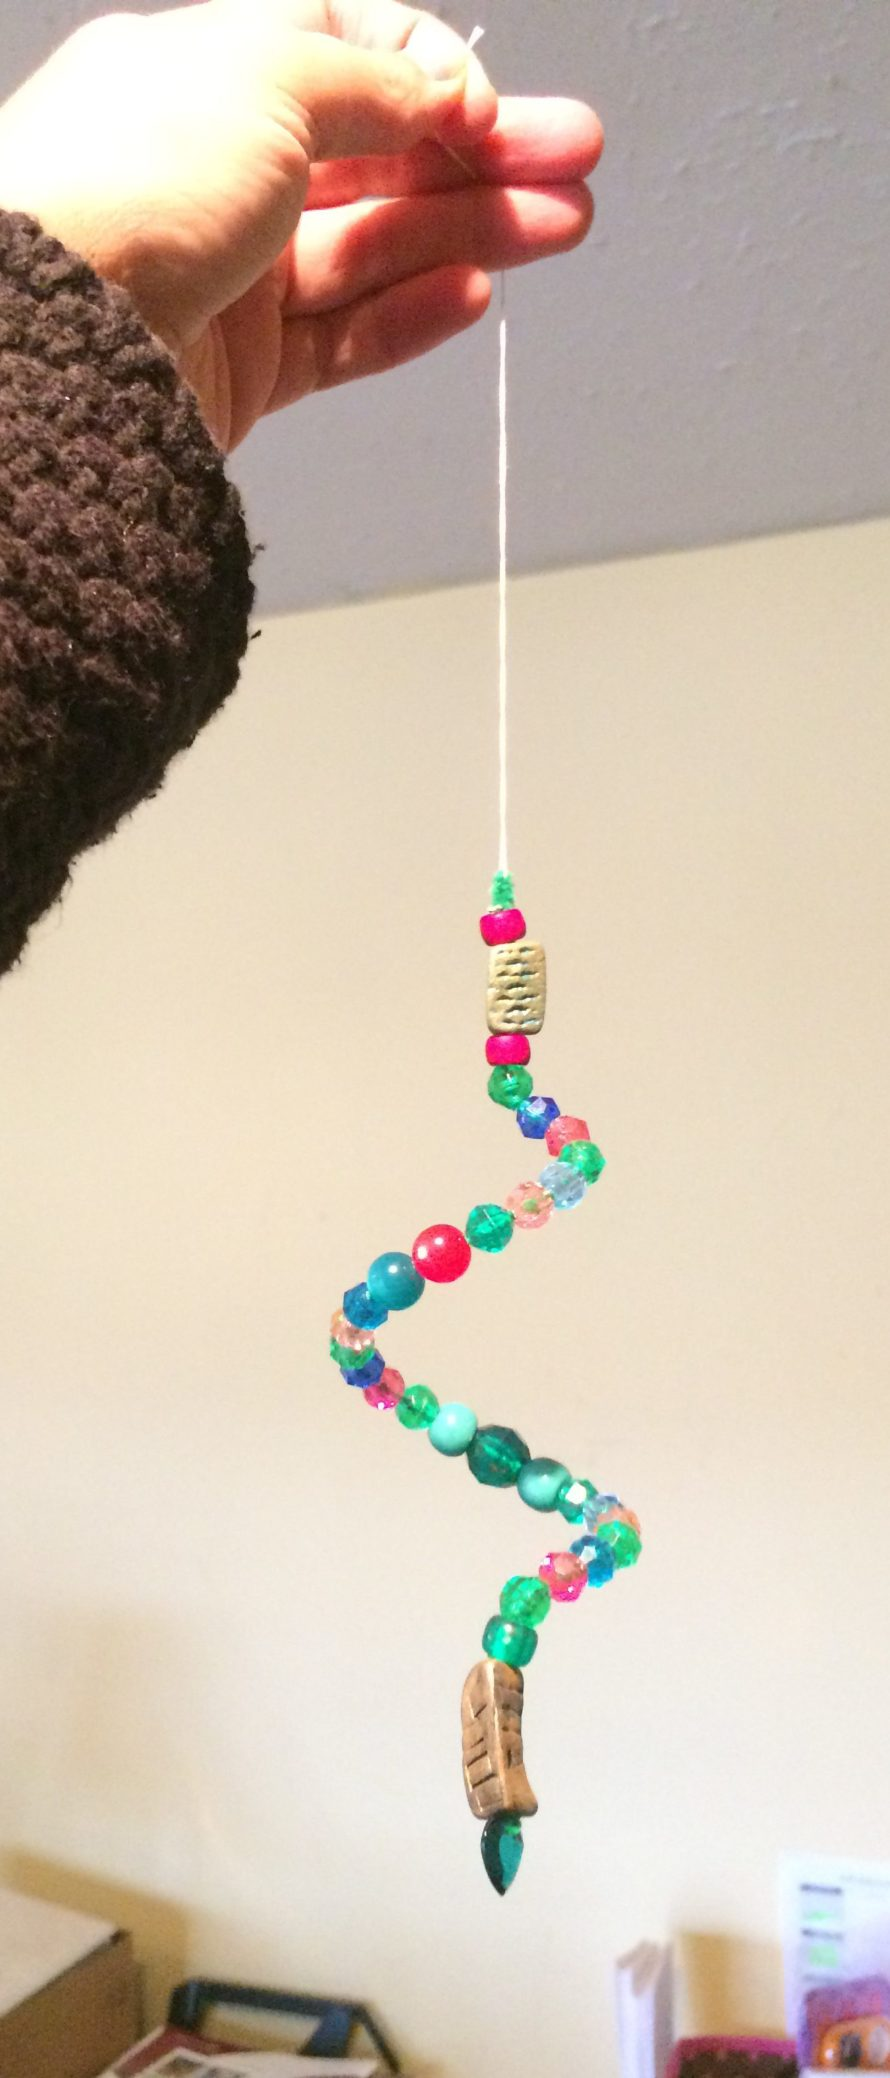 Crafts for the elderly in nursing homes -  Craft Just A Thin Pipe Cleaner Translucent Pony Beads Some Odd Beads A Twist And A Thread To Hang It From I Wanted To Sparkle Up Their Rooms